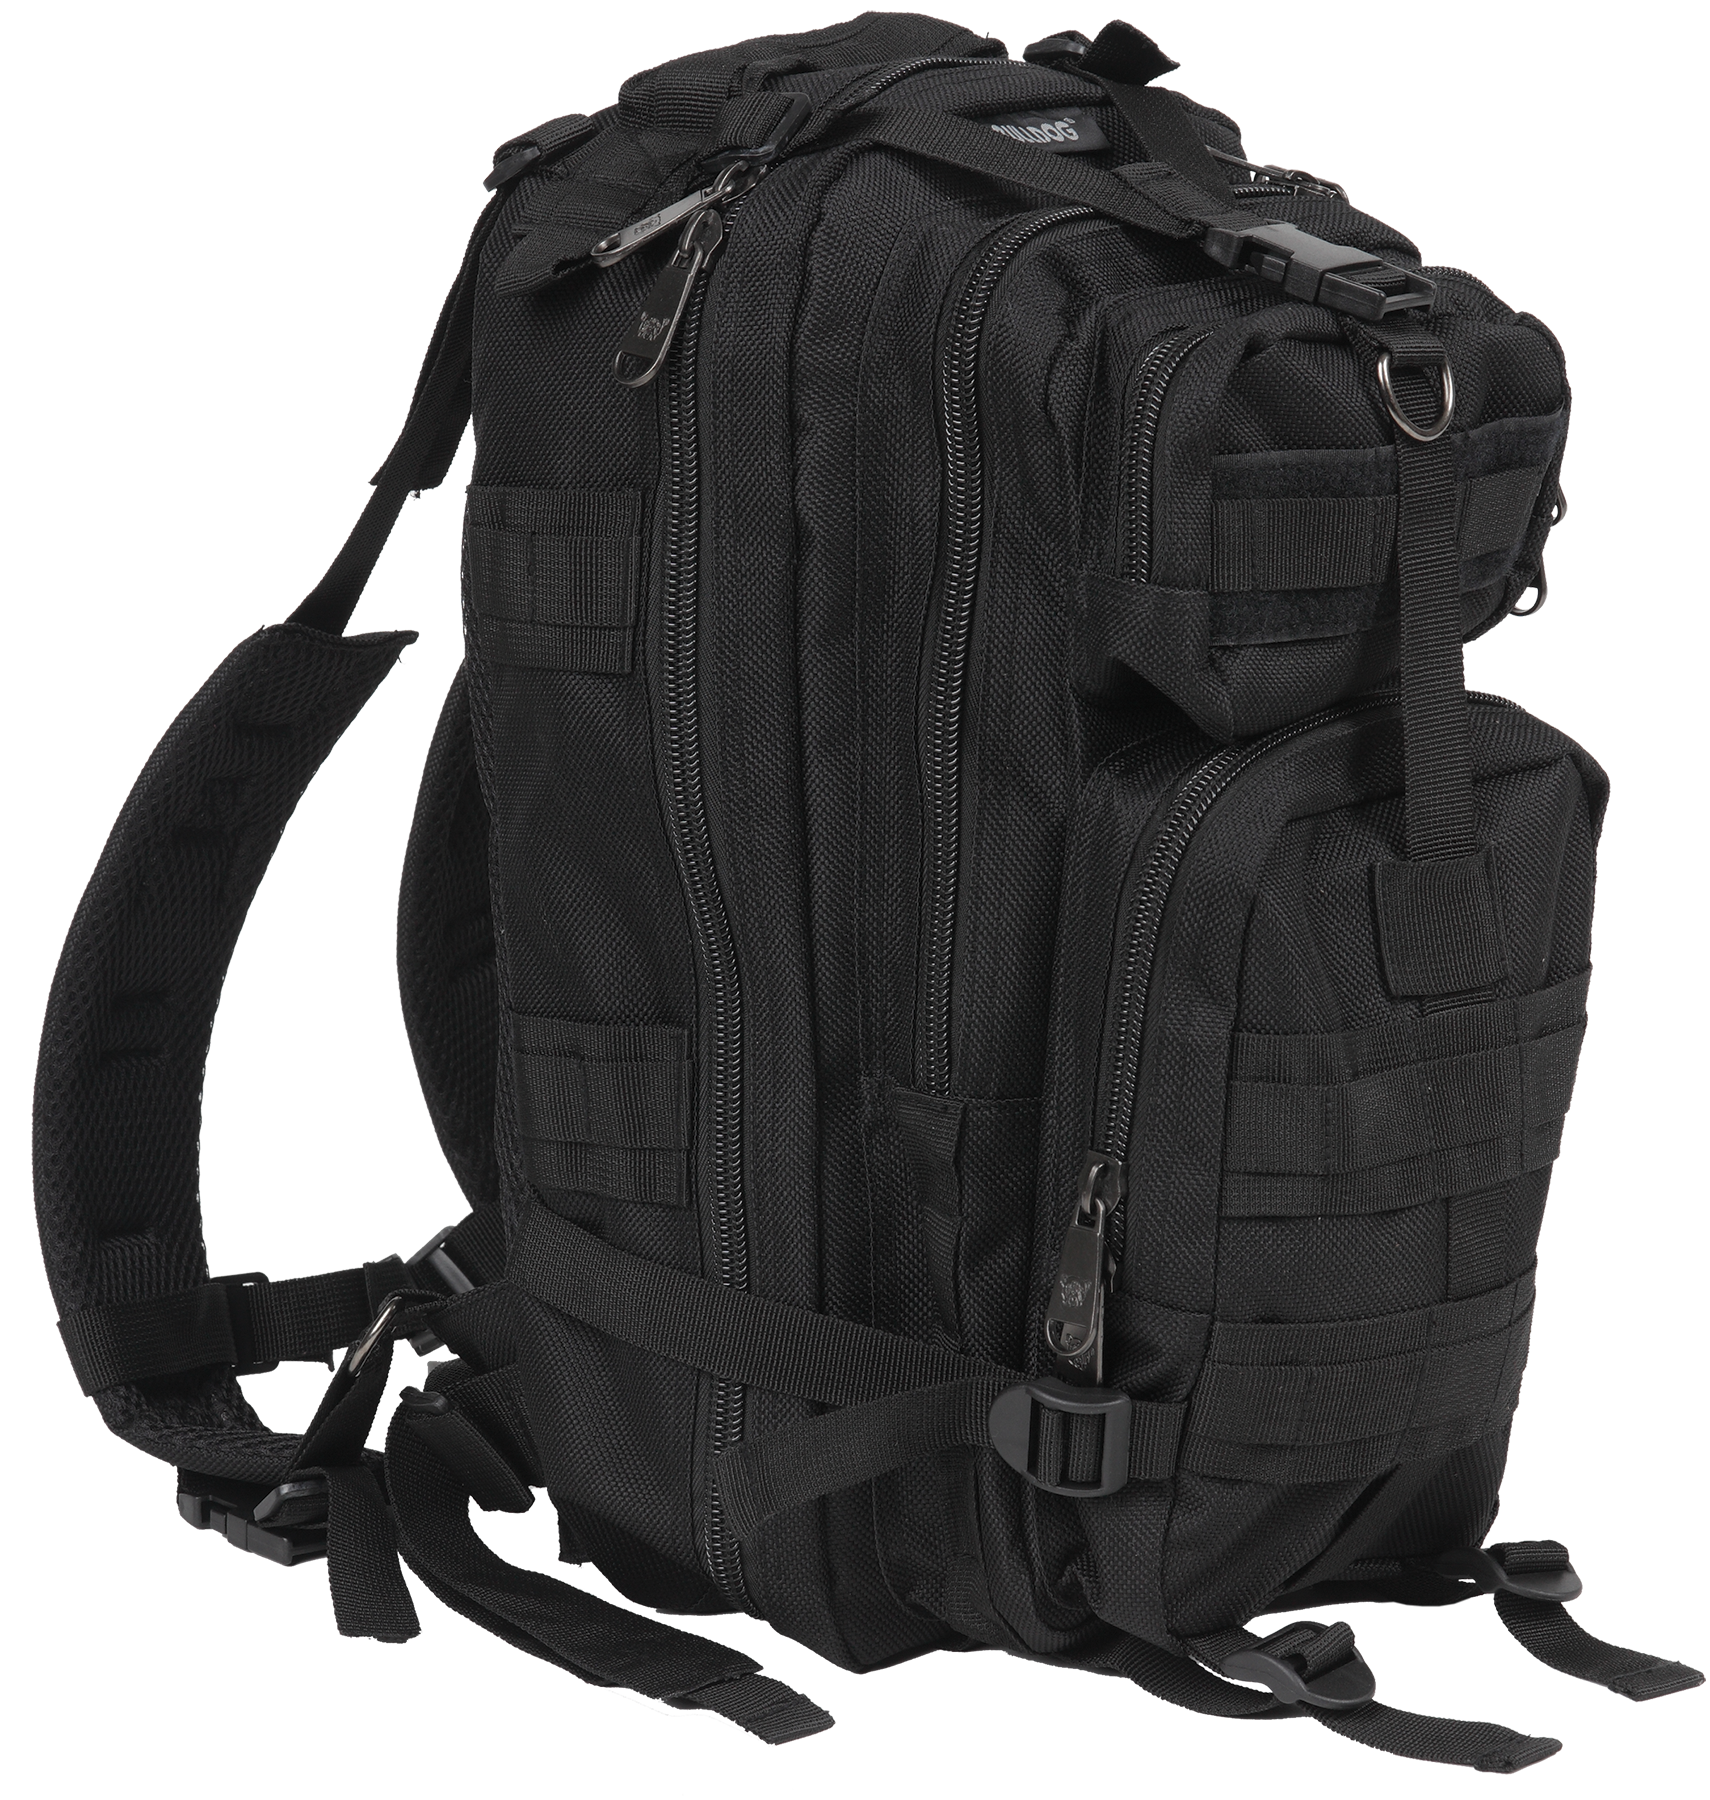 Bulldog BD410 Extreme Compact Level III Assault Backpack Nylon 18